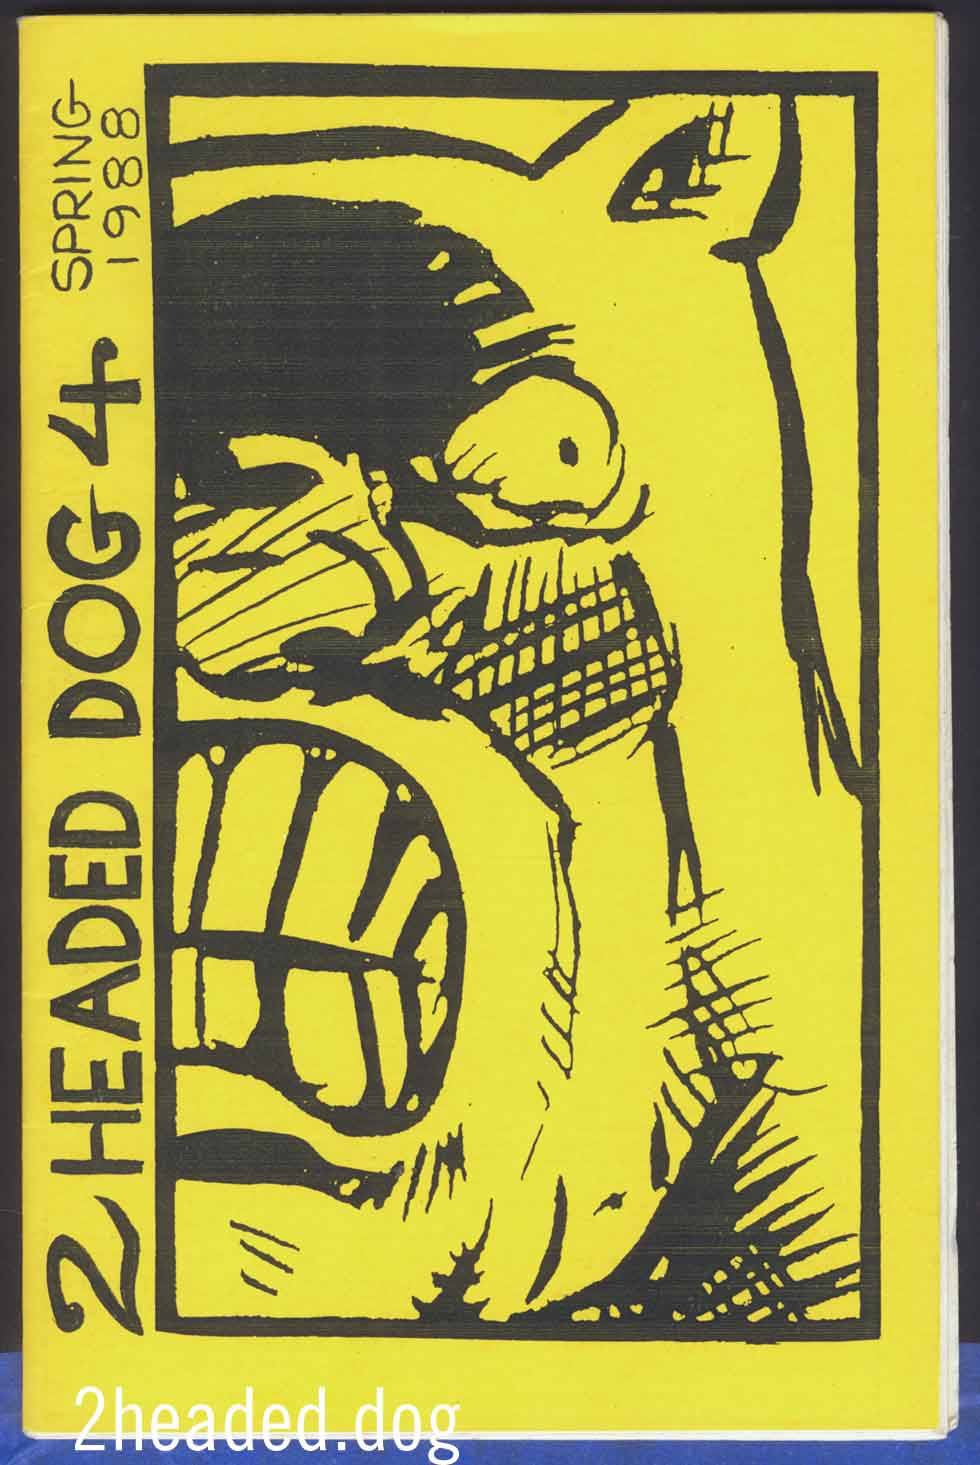 Two Headed Dog issue 4 - 1988